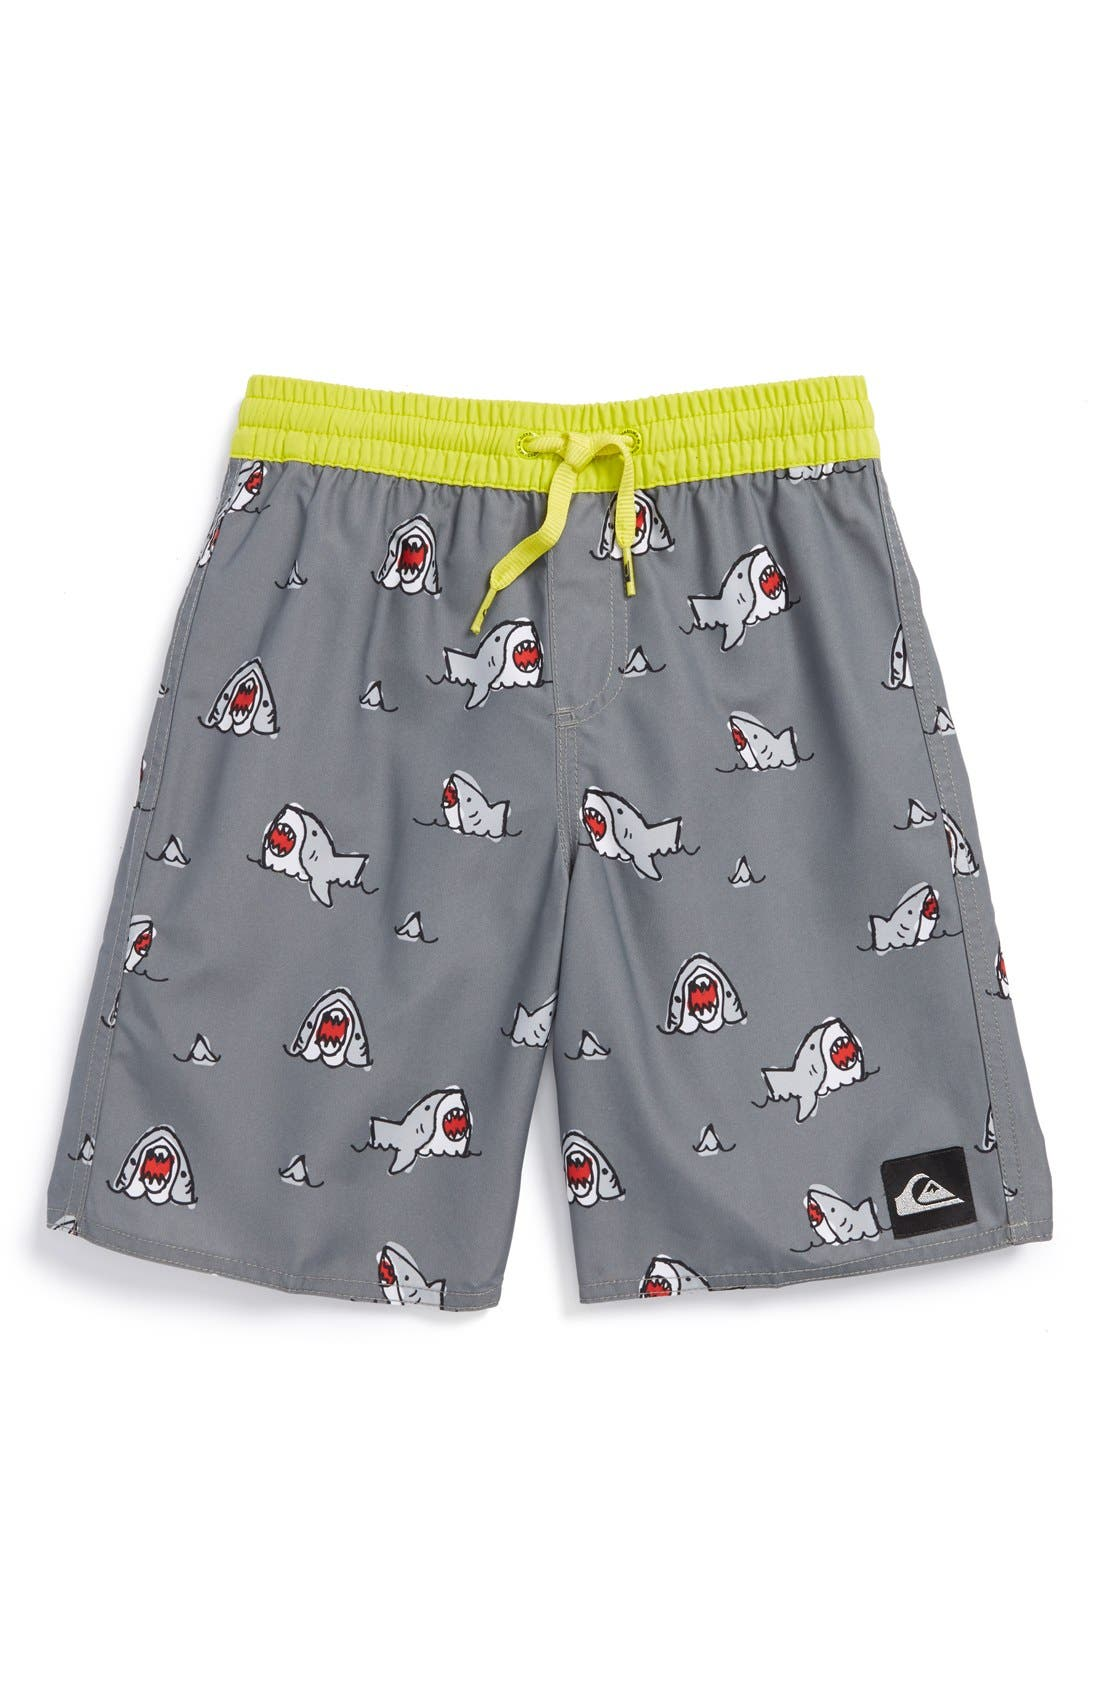 Alternate Image 1 Selected - Quiksilver 'Sharkbait' Volley Shorts (Little Boys)